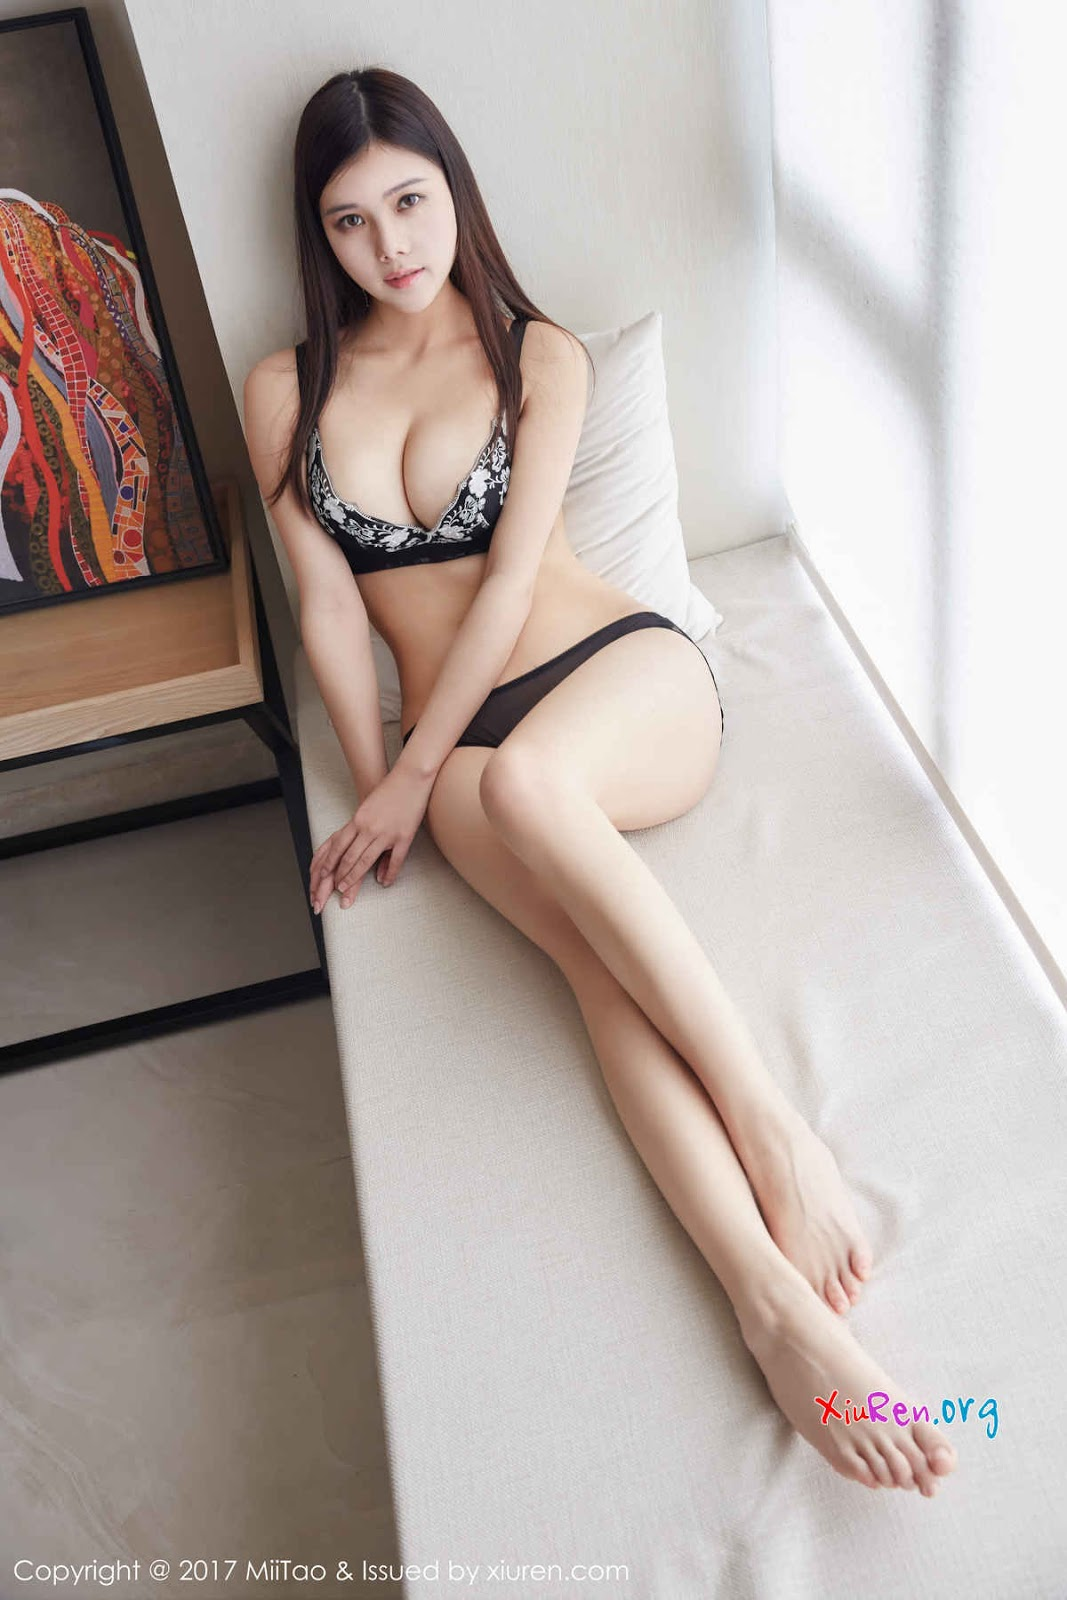 Russian hot girls with perfect bodies